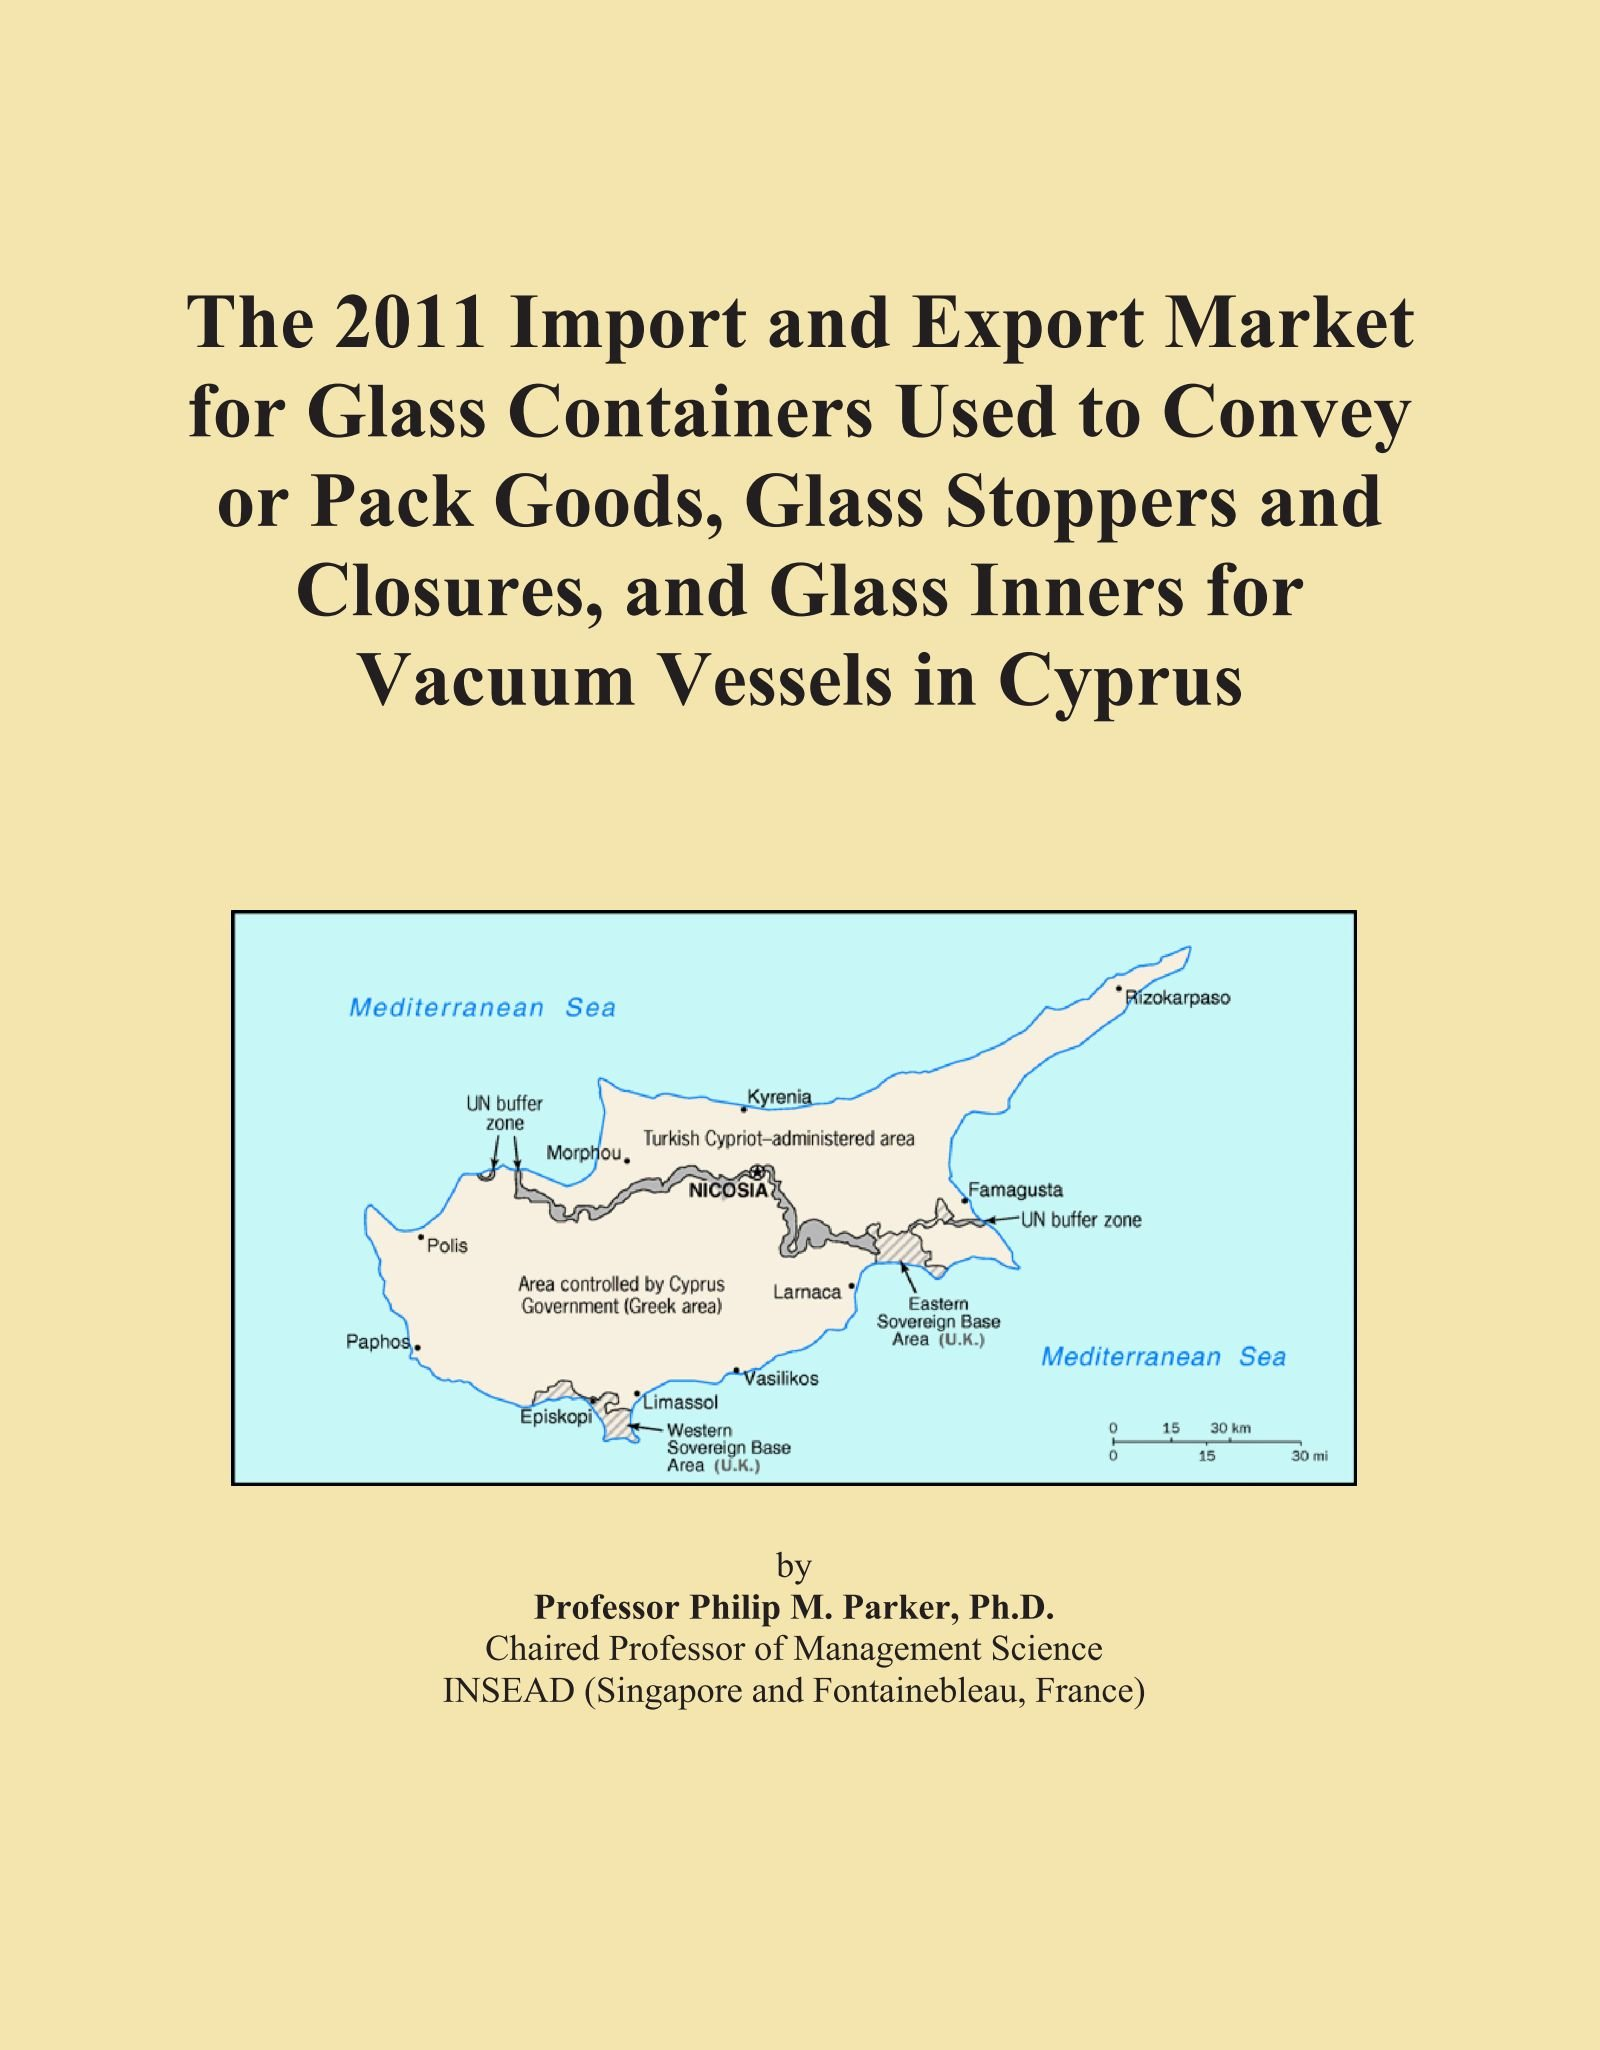 The 2011 Import and Export Market for Glass Containers Used to Convey or Pack Goods, Glass Stoppers and Closures, and Glass Inners for Vacuum Vessels in Cyprus PDF